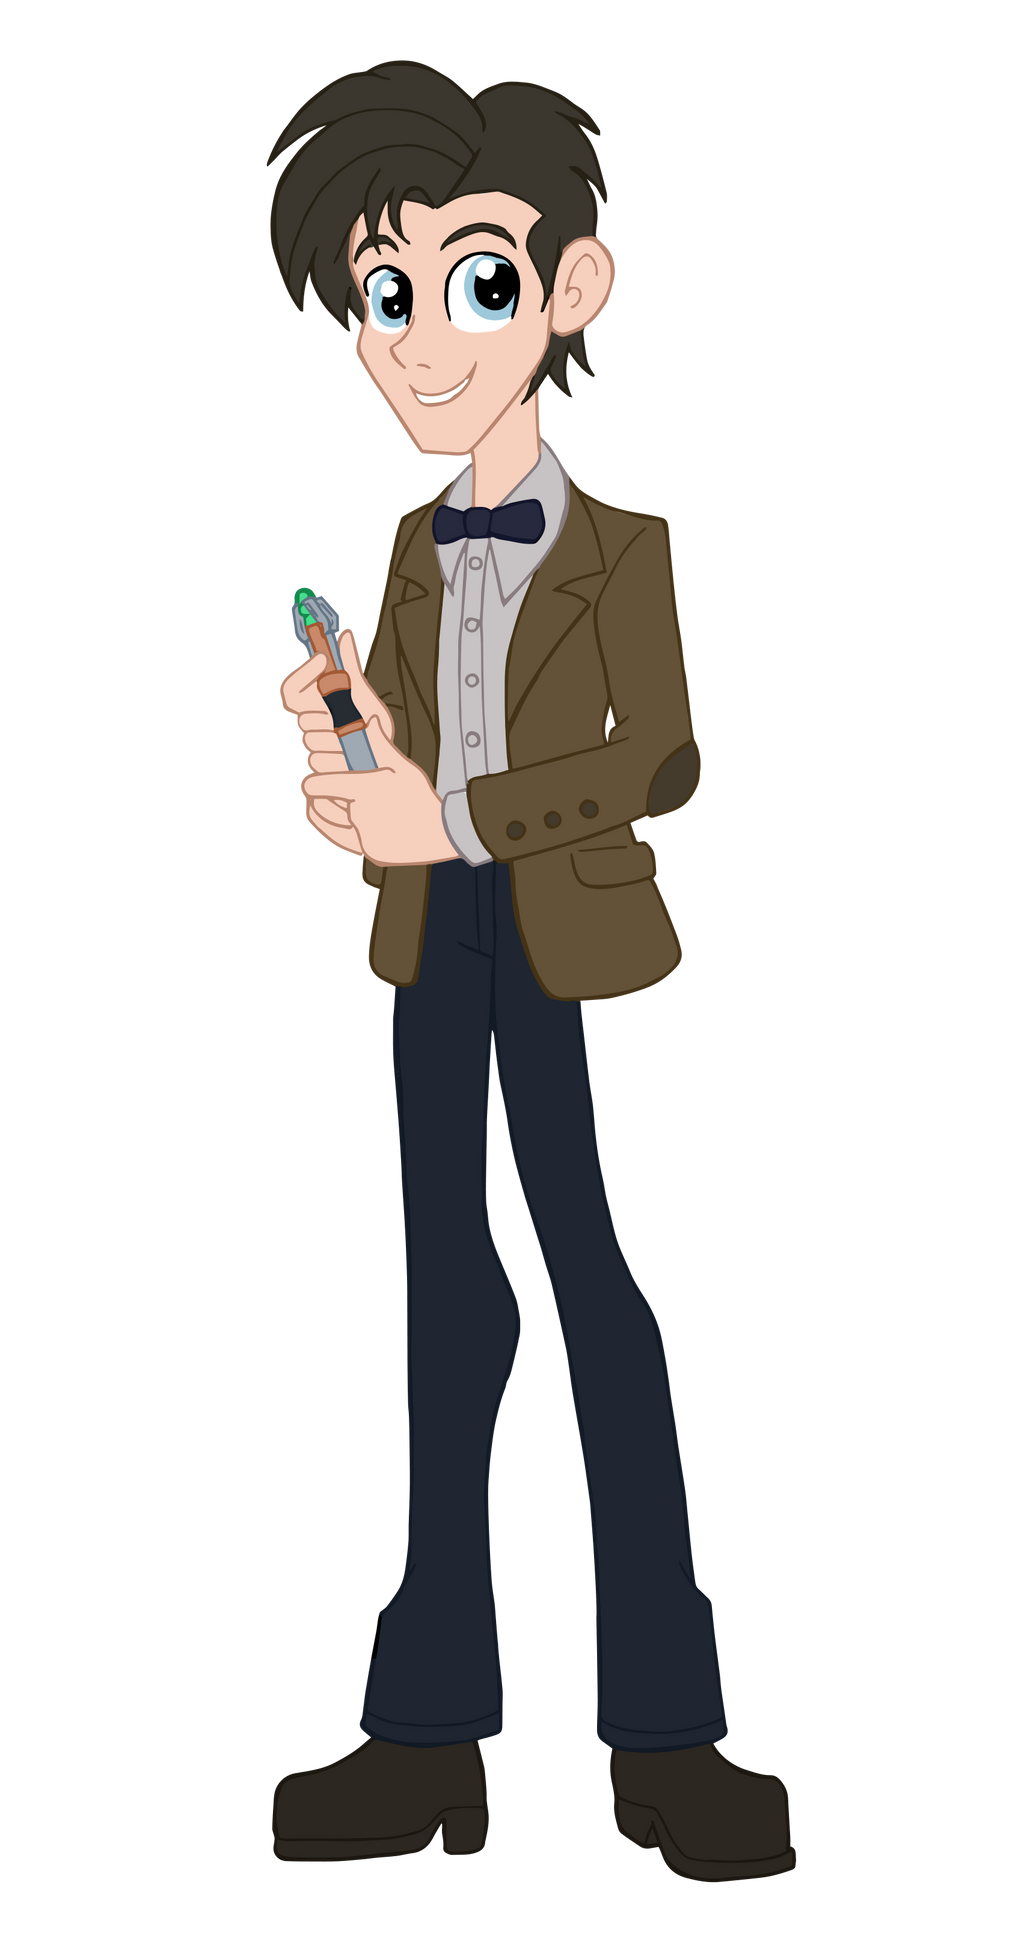 equestria girls doctor who eleventh doctor by edcom02 on